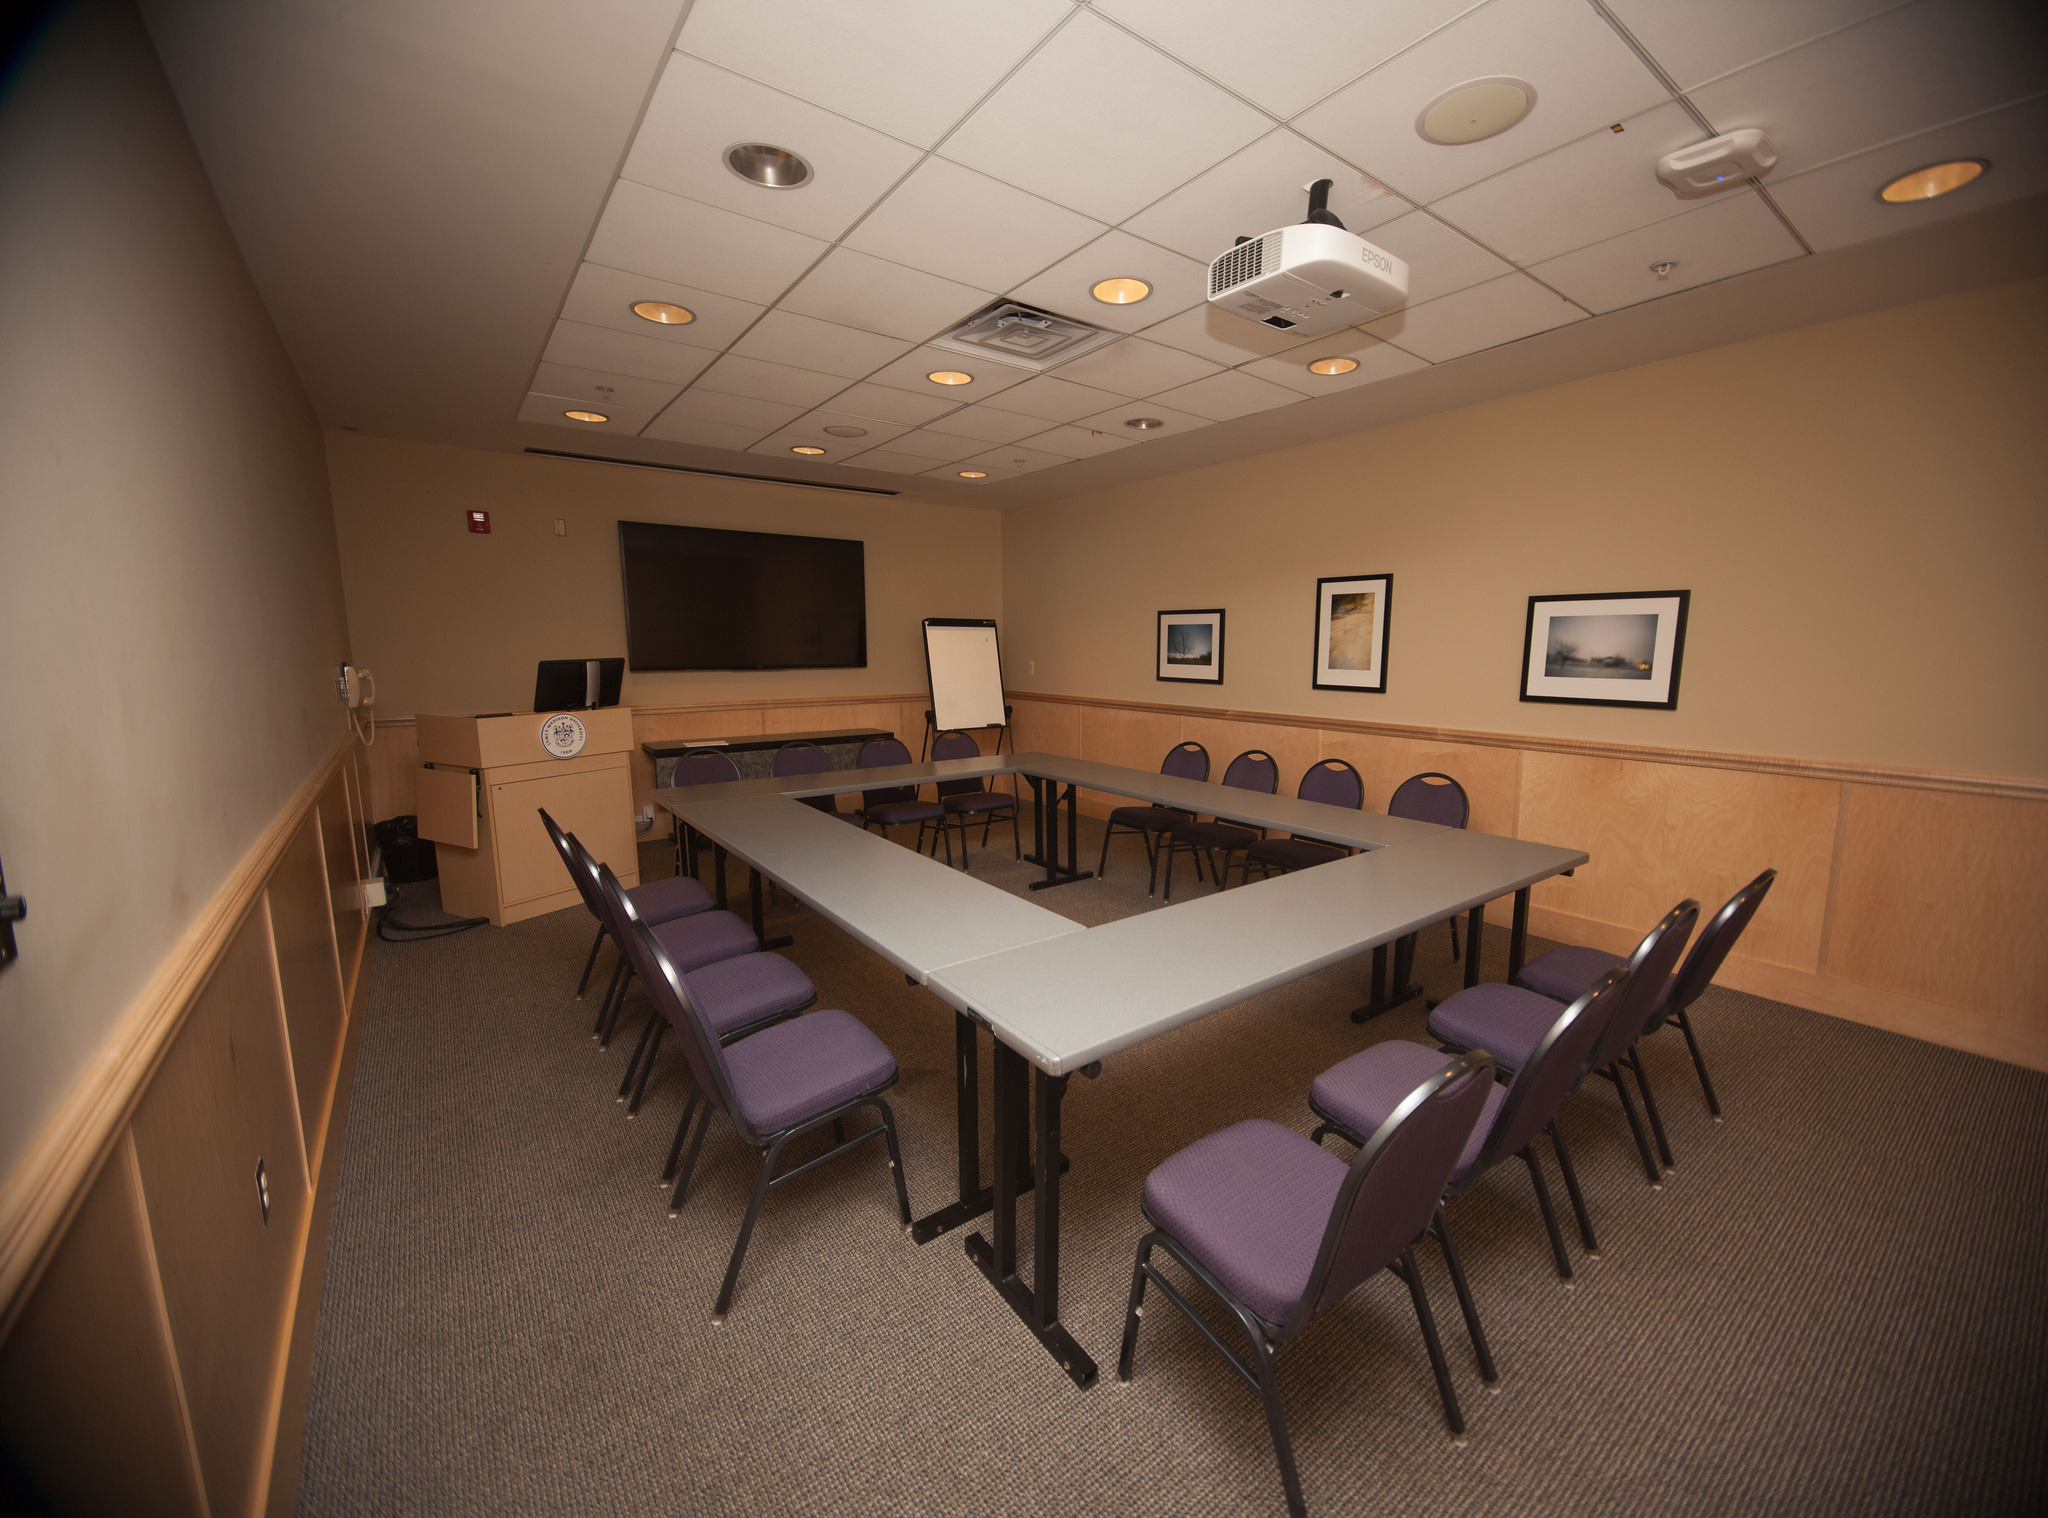 Photo of a small conference room with hollow square setup.